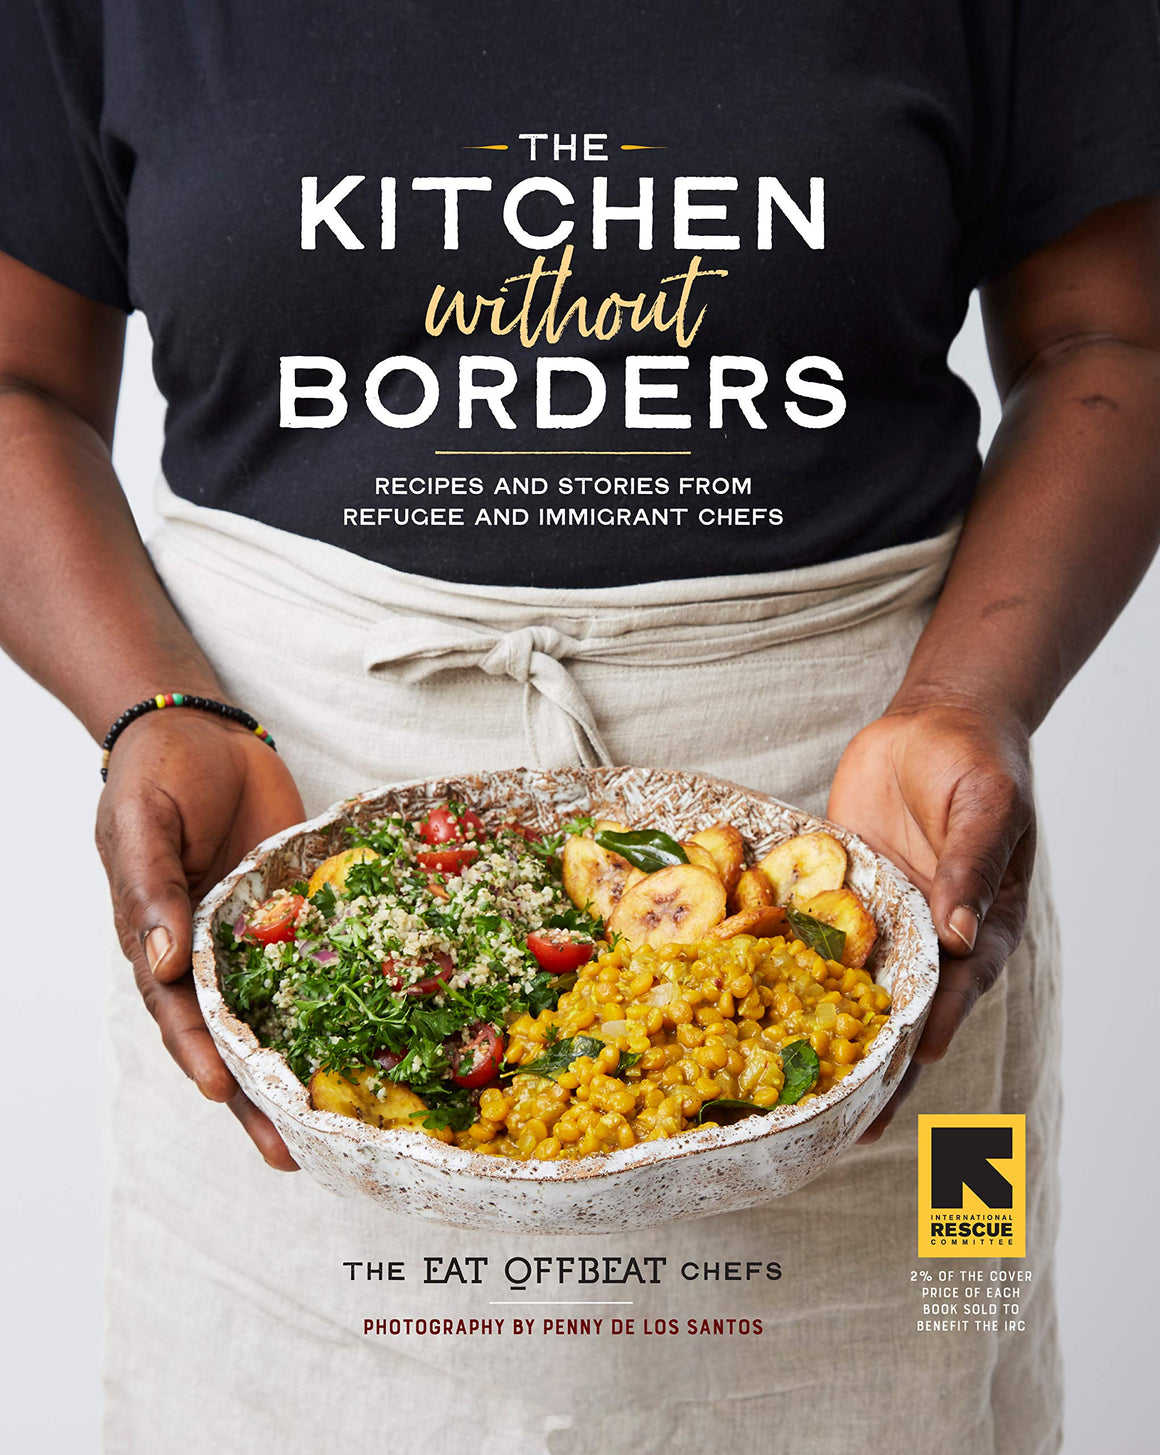 PRE-ORDER! Eat Offbeat Chefs. The Kitchen without Borders: Recipes and Stories from Refugee and Immigrant Chefs. Expected: June 2020.